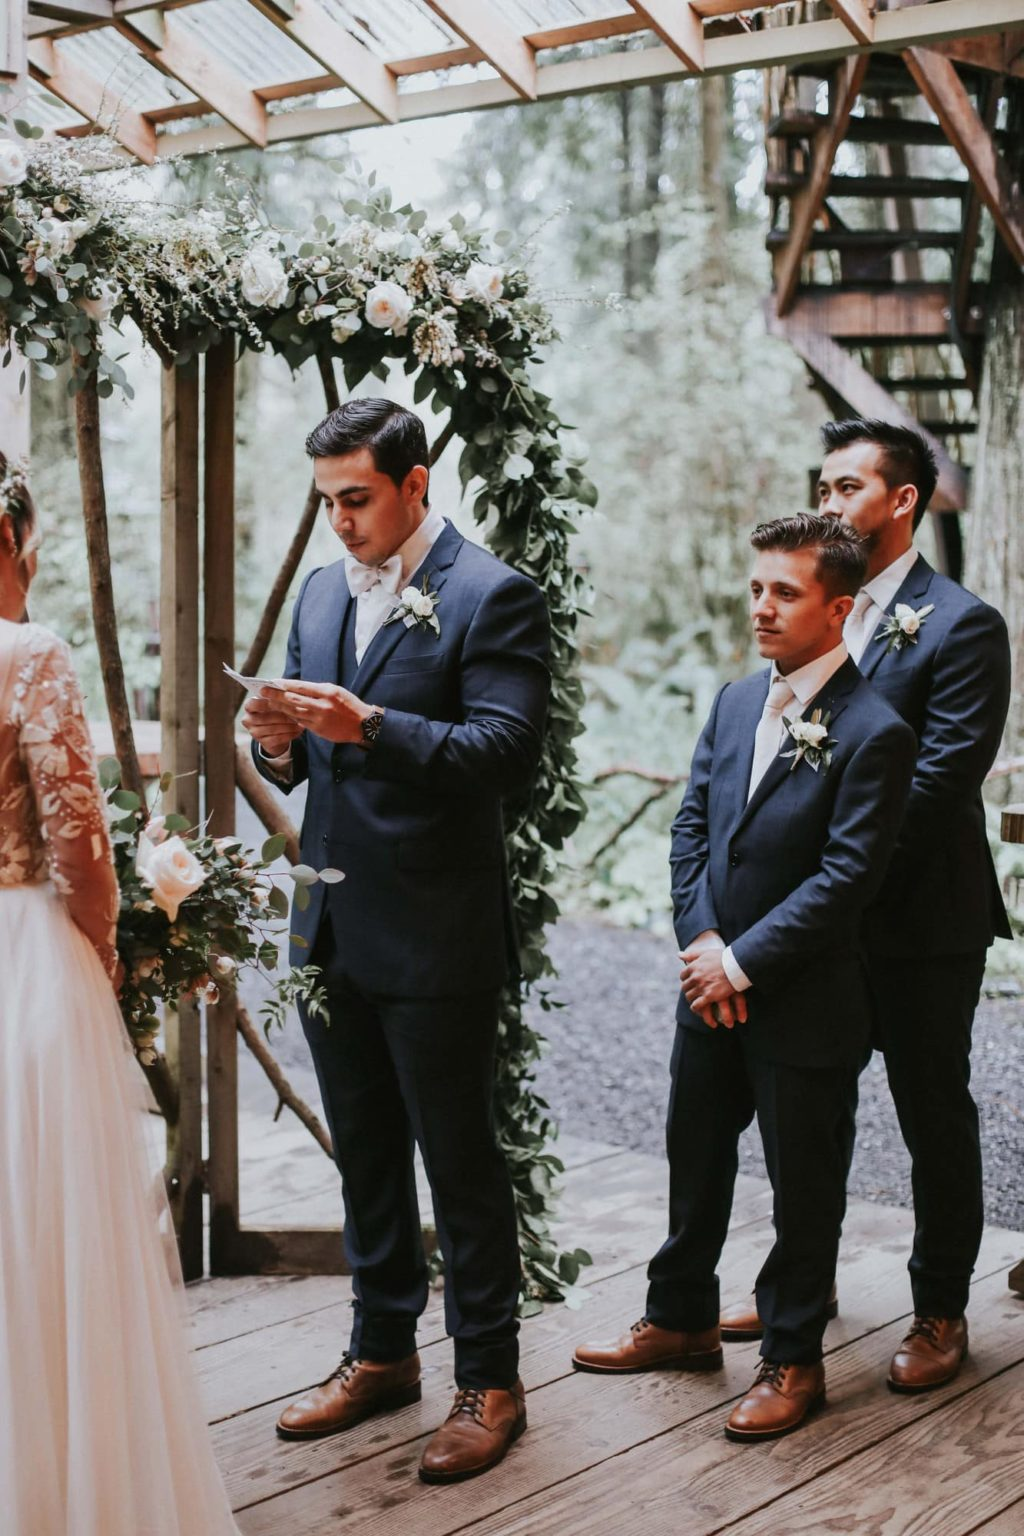 groom reading his vows at his ceremony